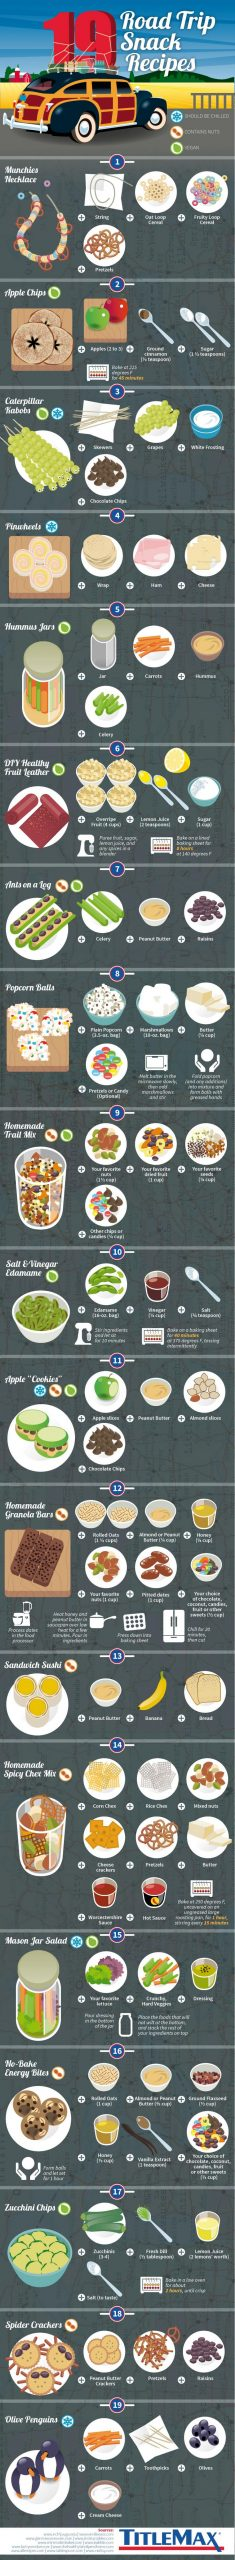 12 simple and healthy road trip snack recipes